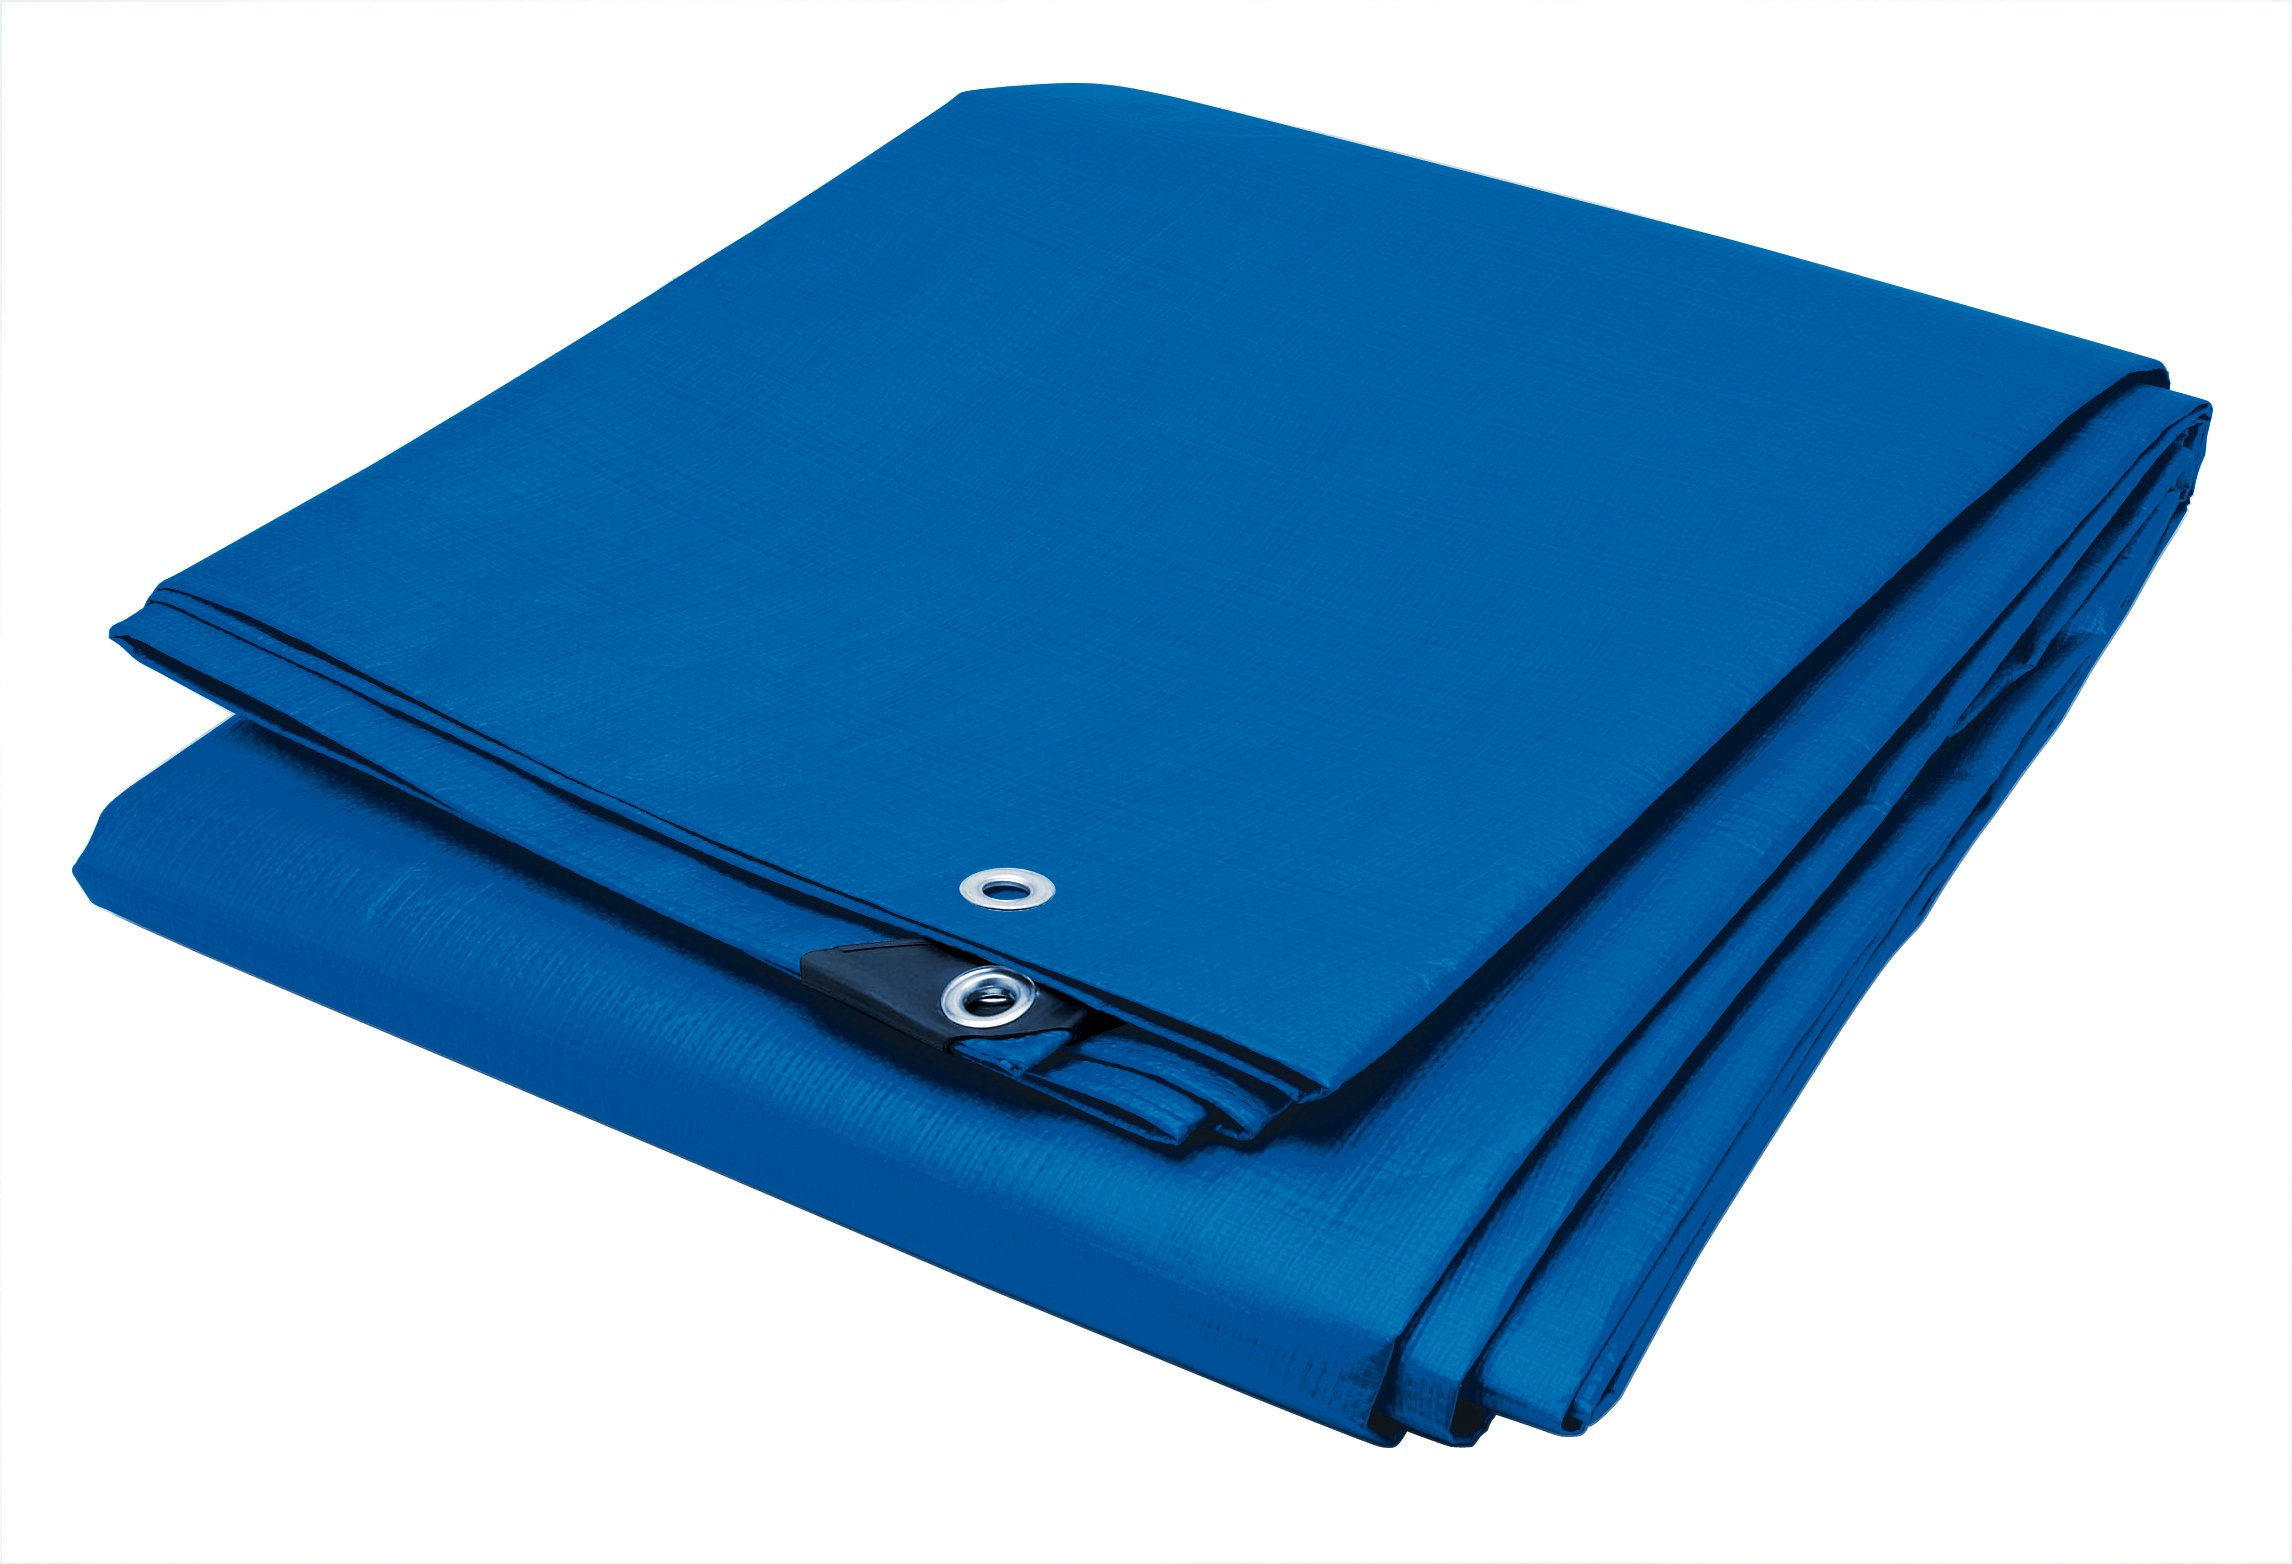 Performance Tool W6000 Reinforced Water Resistant Multi Purpose Blue Tarp 4 mil, 5 feet x 7 feet | Ideal for Tarpaulin Canopy Tent, Boat, RV Or Pool Cover | Perfect for Backpacking, Camping & Shelters